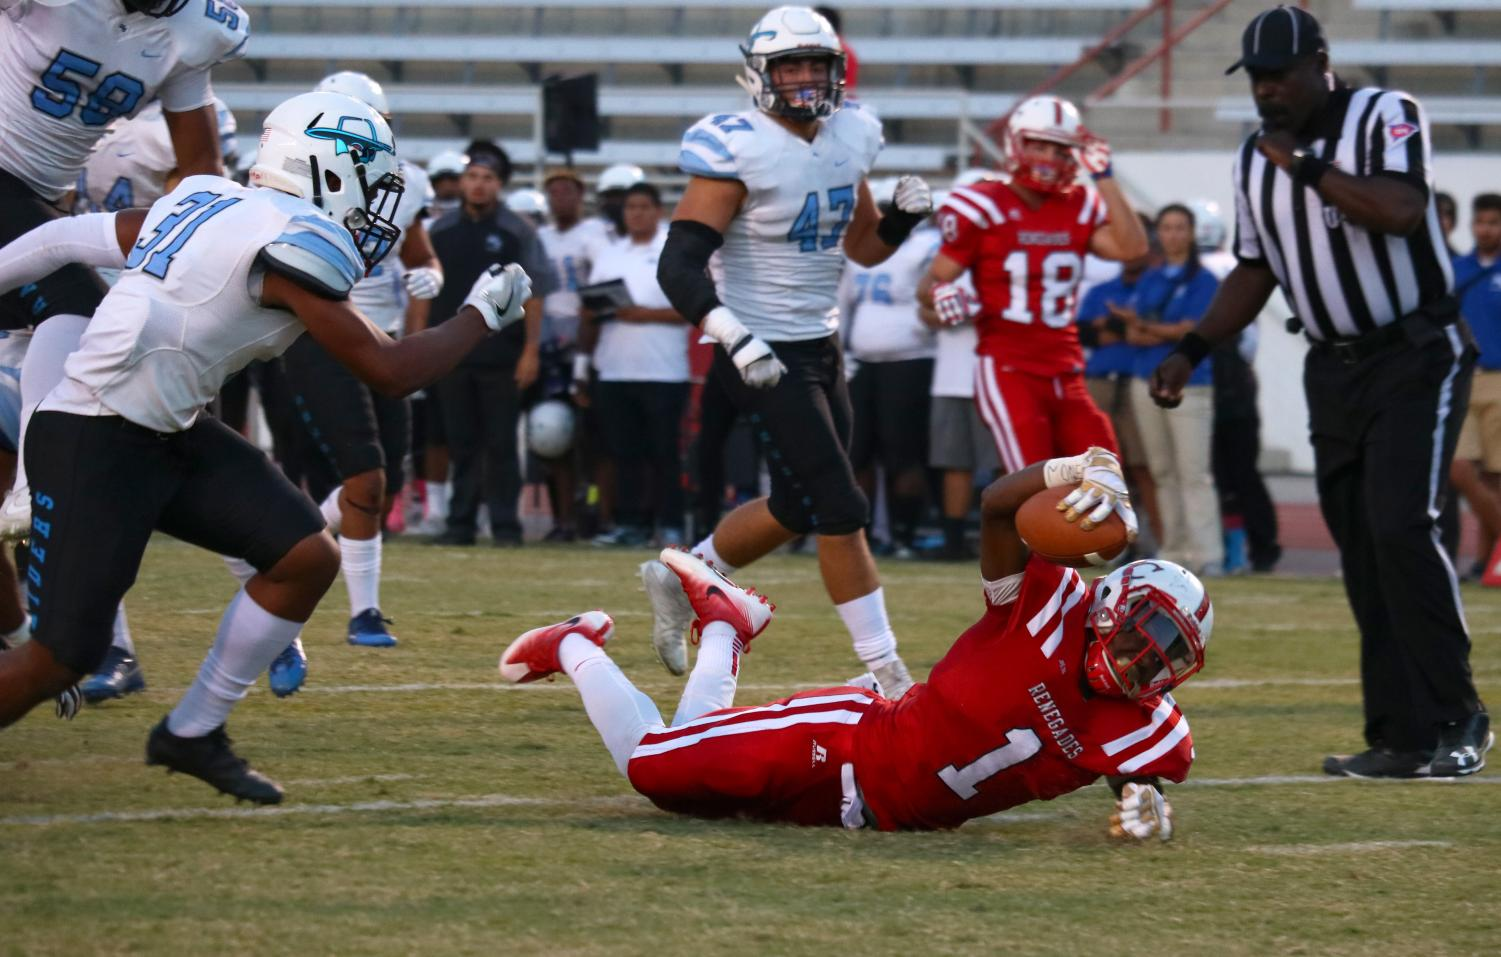 BC Renegade running back Elisha Ortiz breaking Moorpark's defensive line as he inches closer to scoring a touchdown.